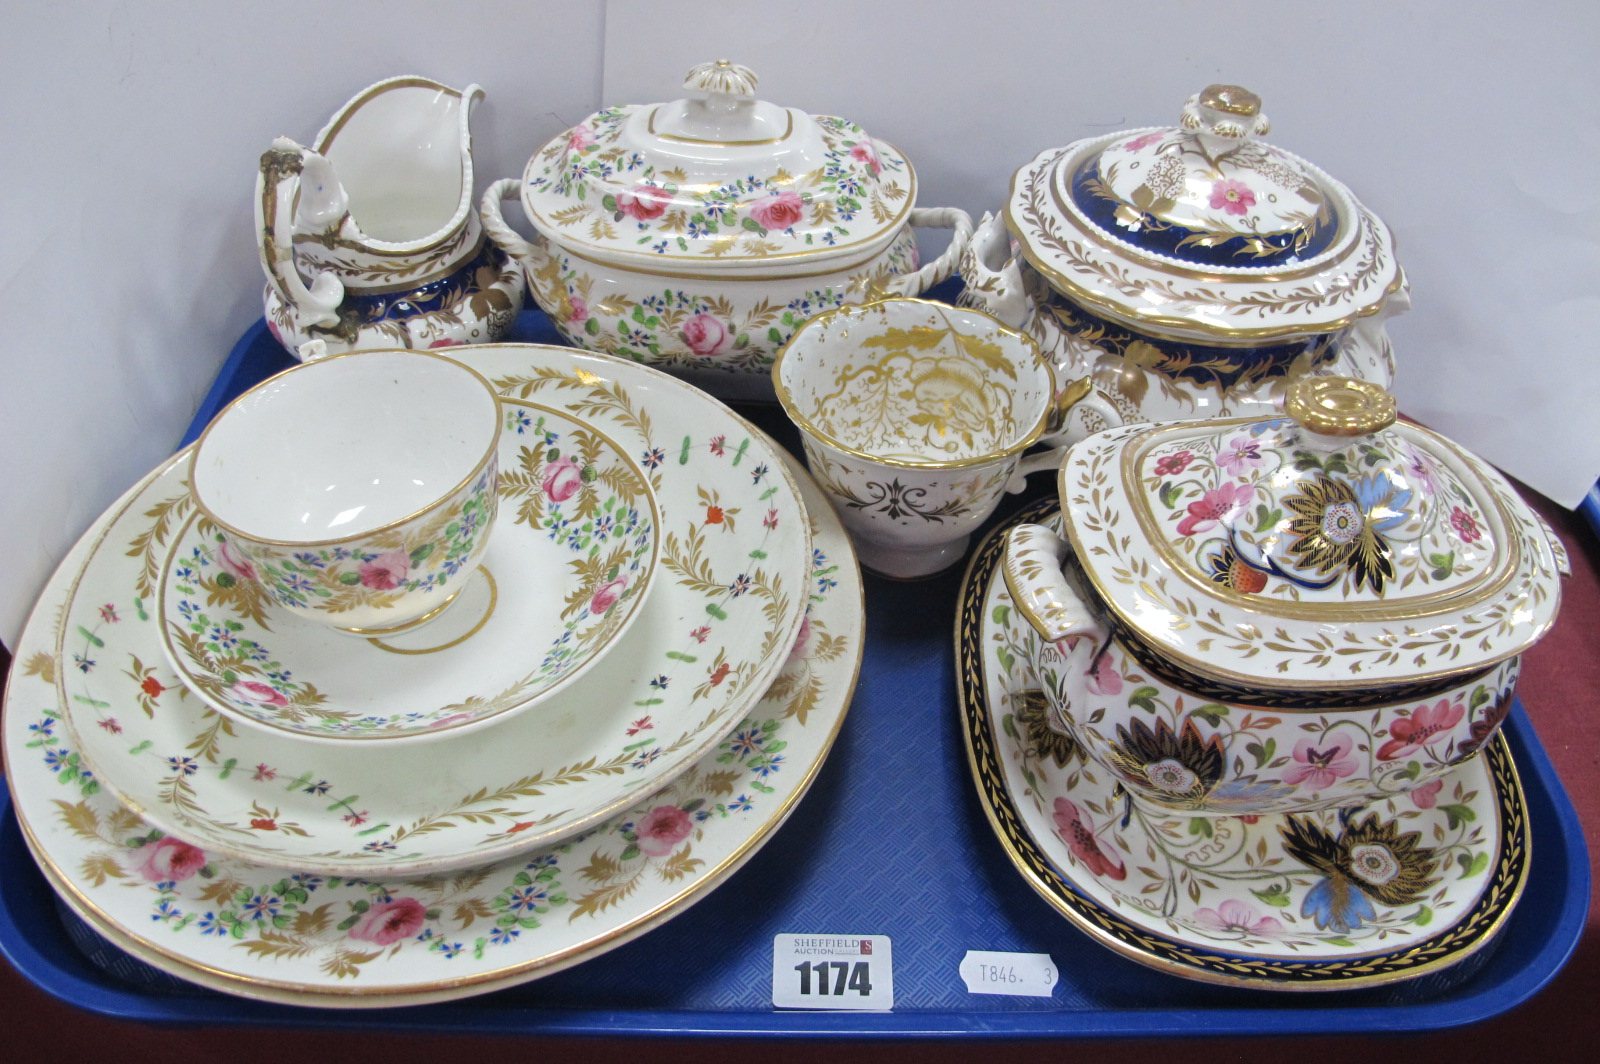 Crown Derby XIX Century Sucrier, three plates, cup and saucer in gilt with pink roses, other XIX